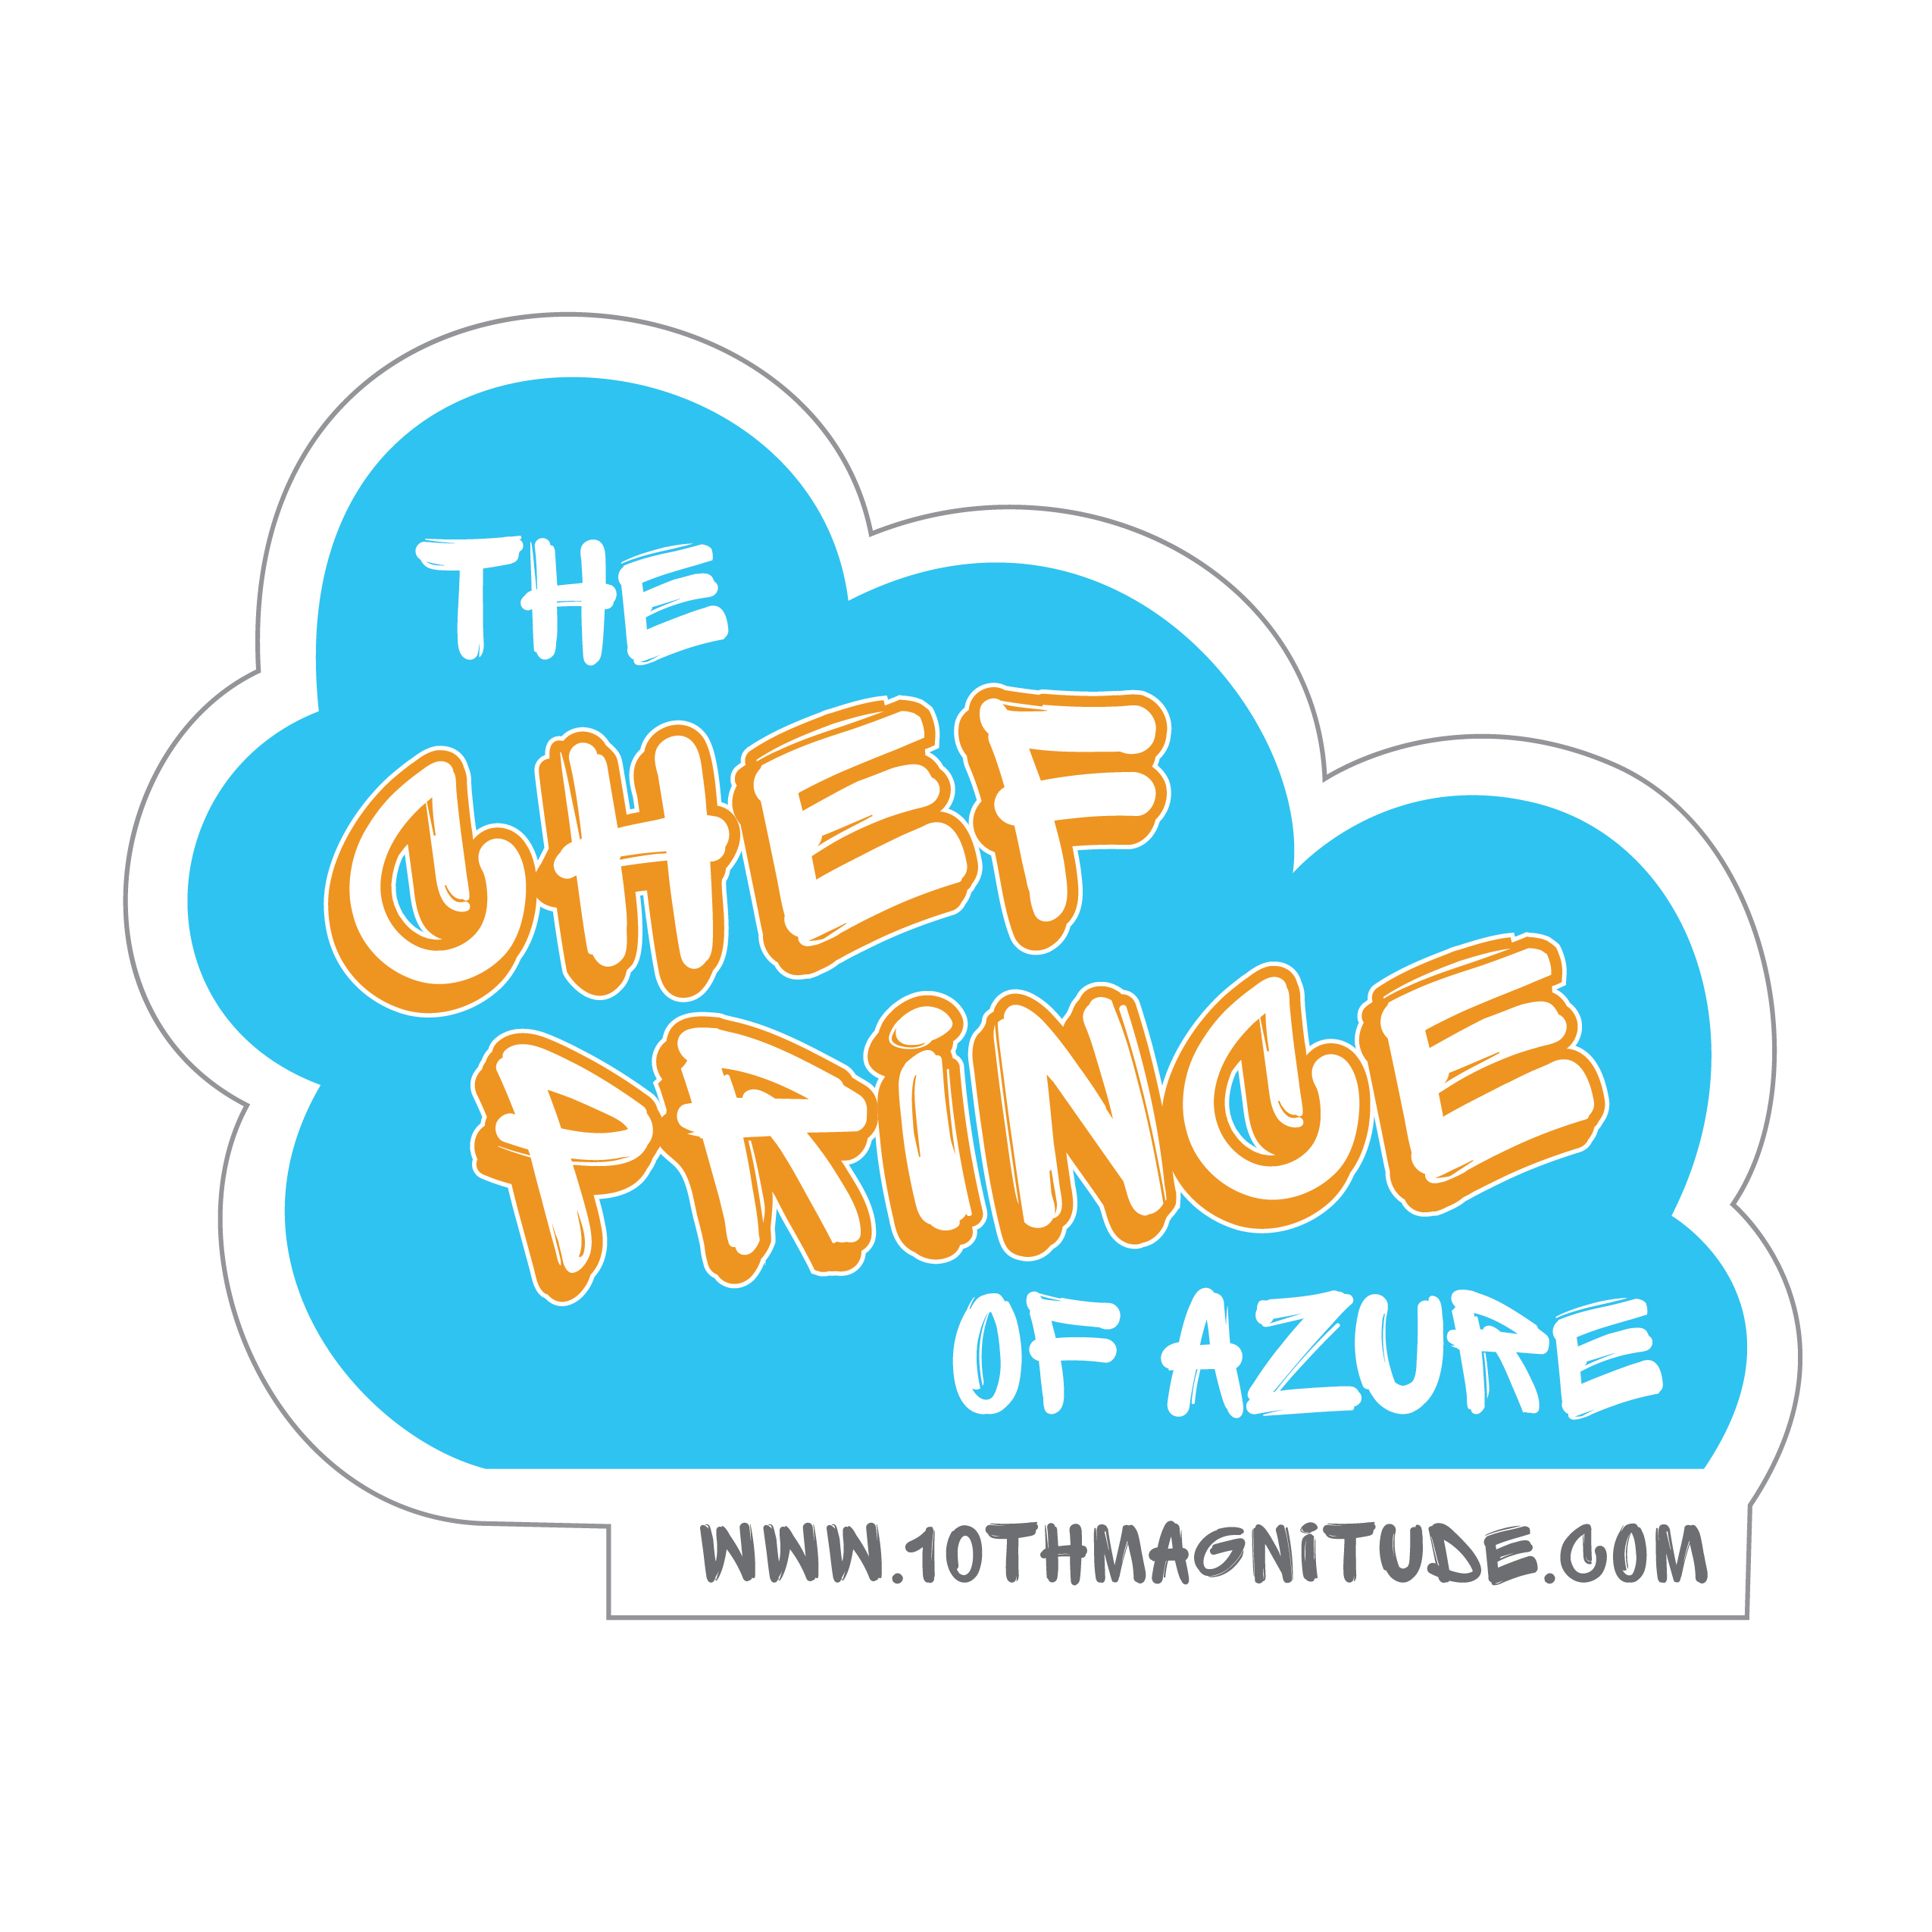 The Chef Prince of Azure